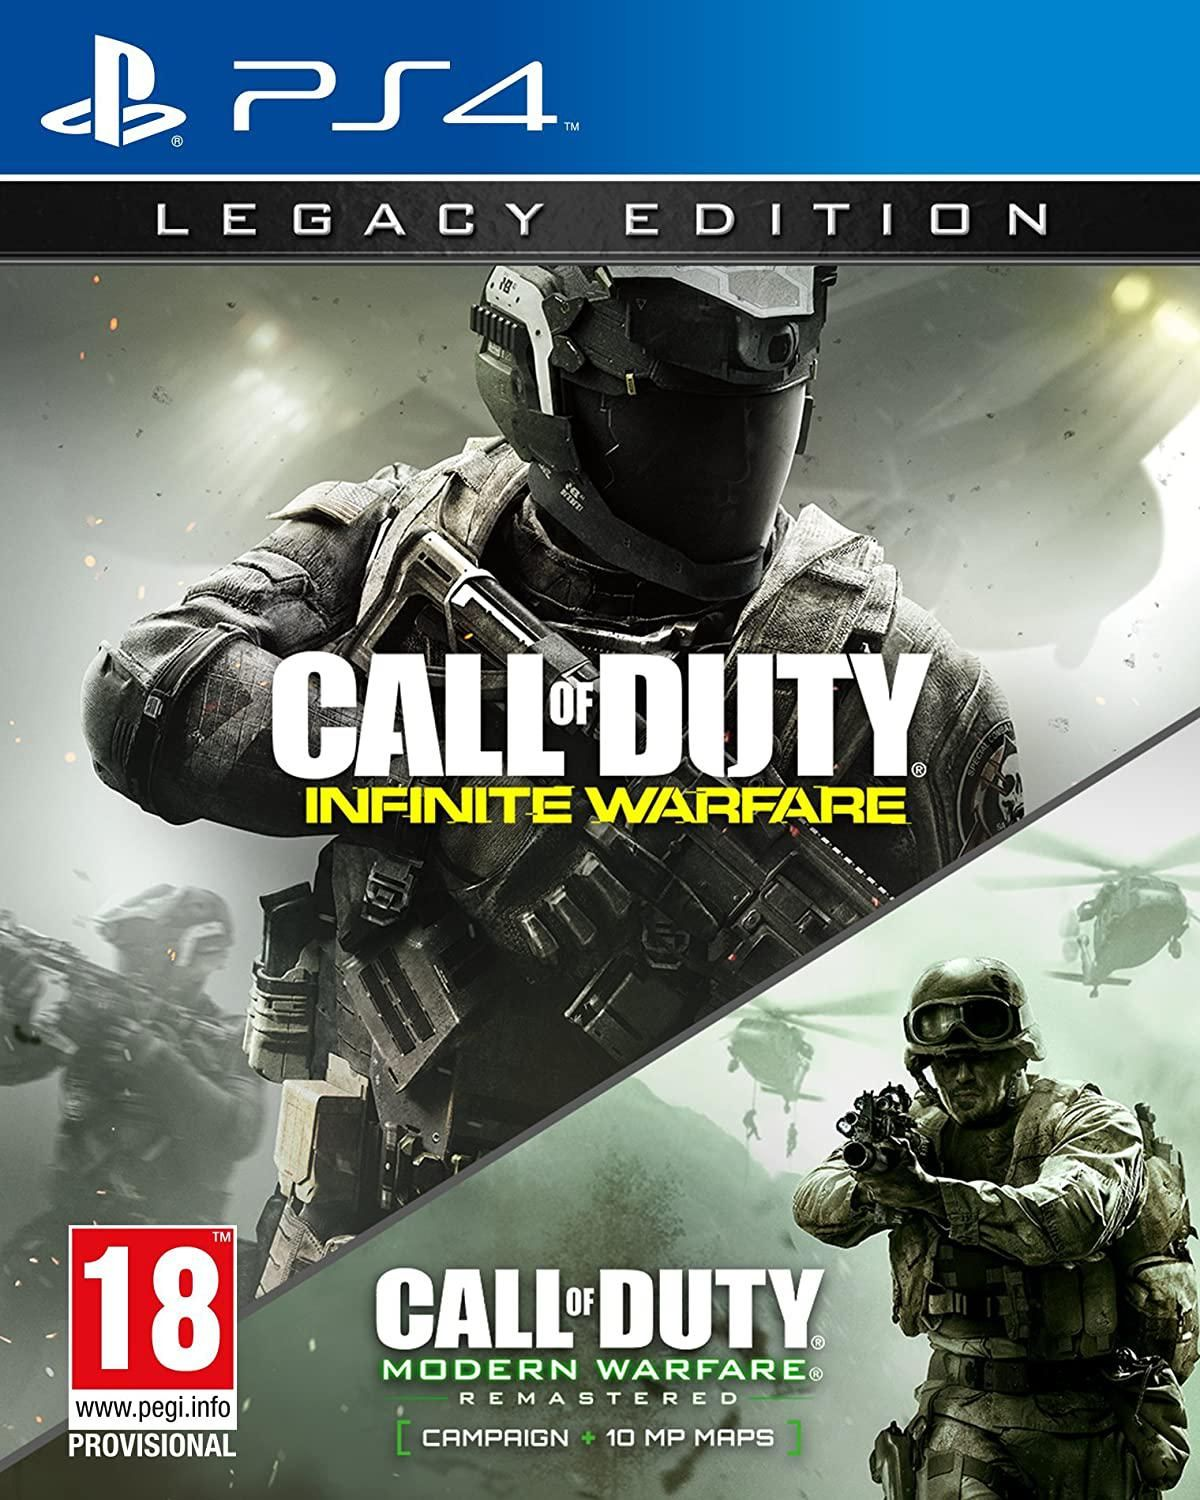 Call of Duty: Infinite Warfare - Legacy Edition (PS4) - COD MWR Expired